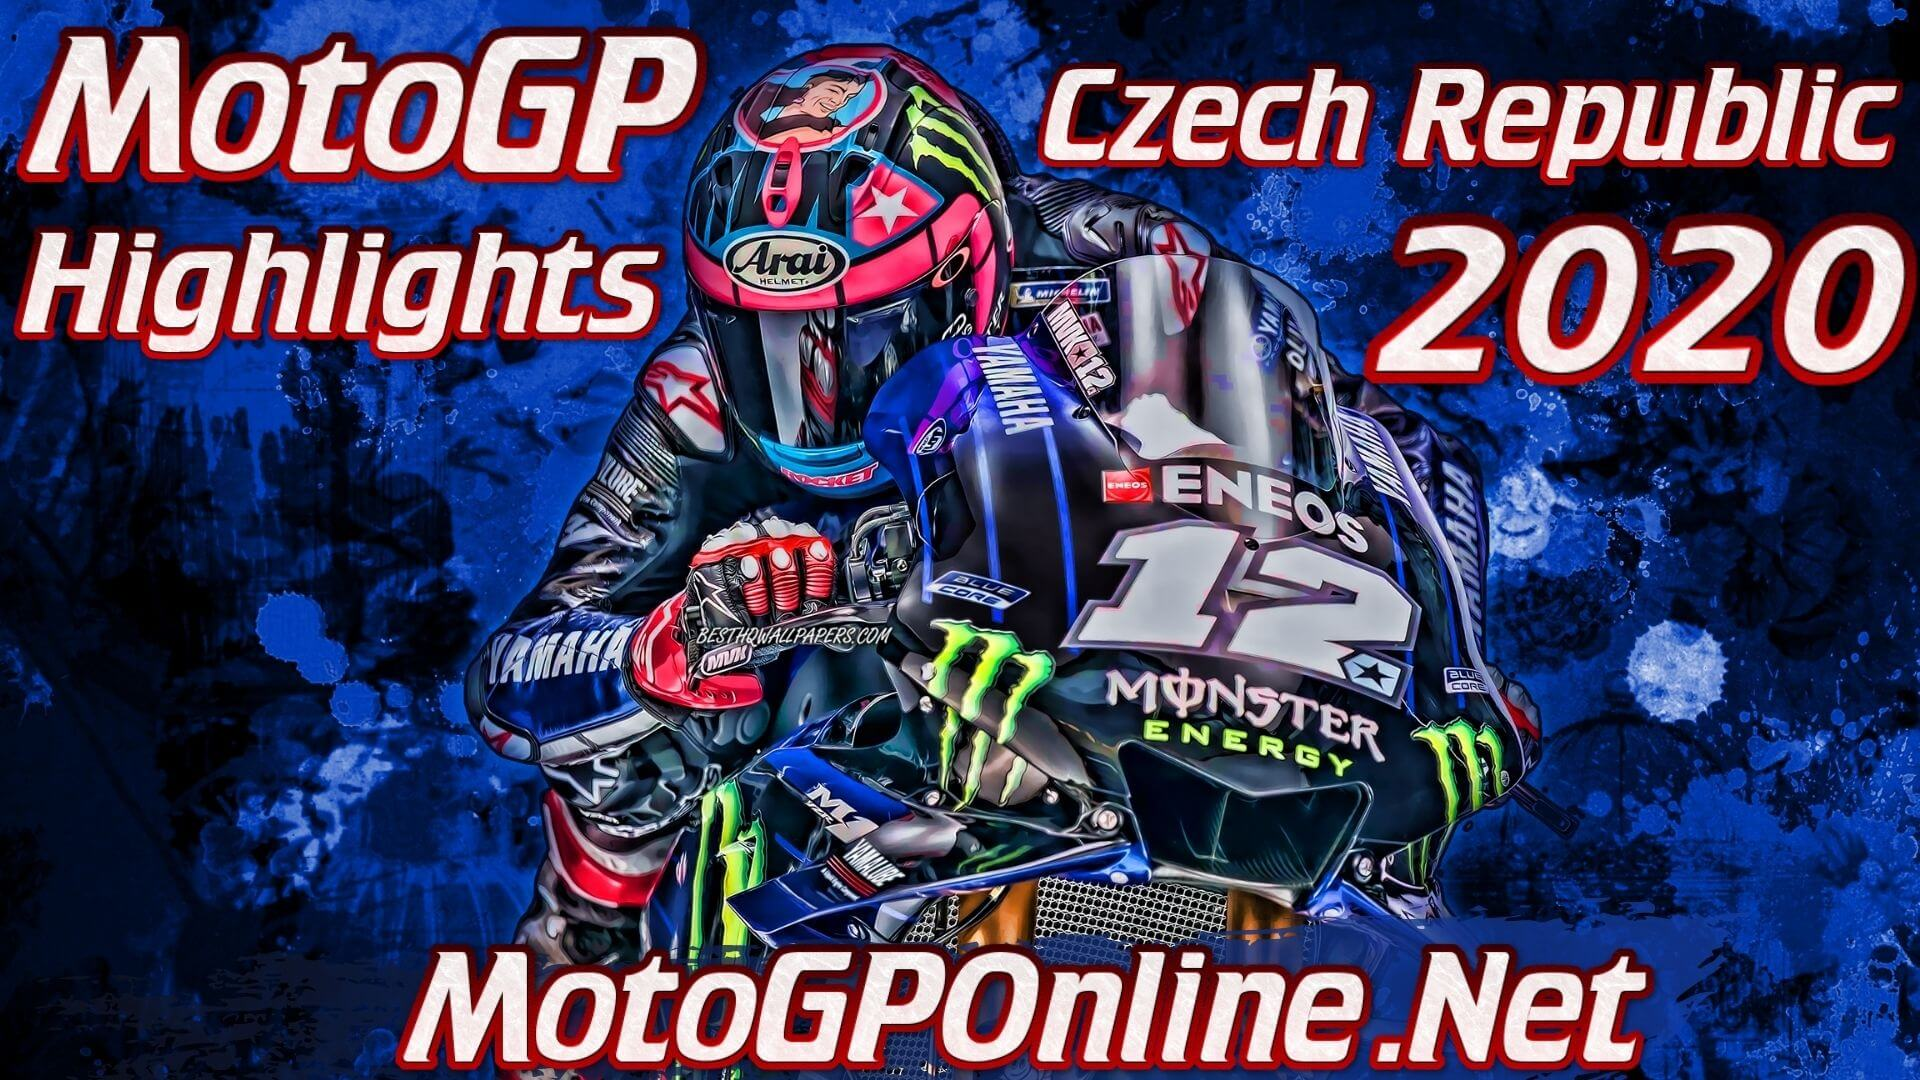 MotoGP Czech Republic Grand Prix Highlights 2020 Race